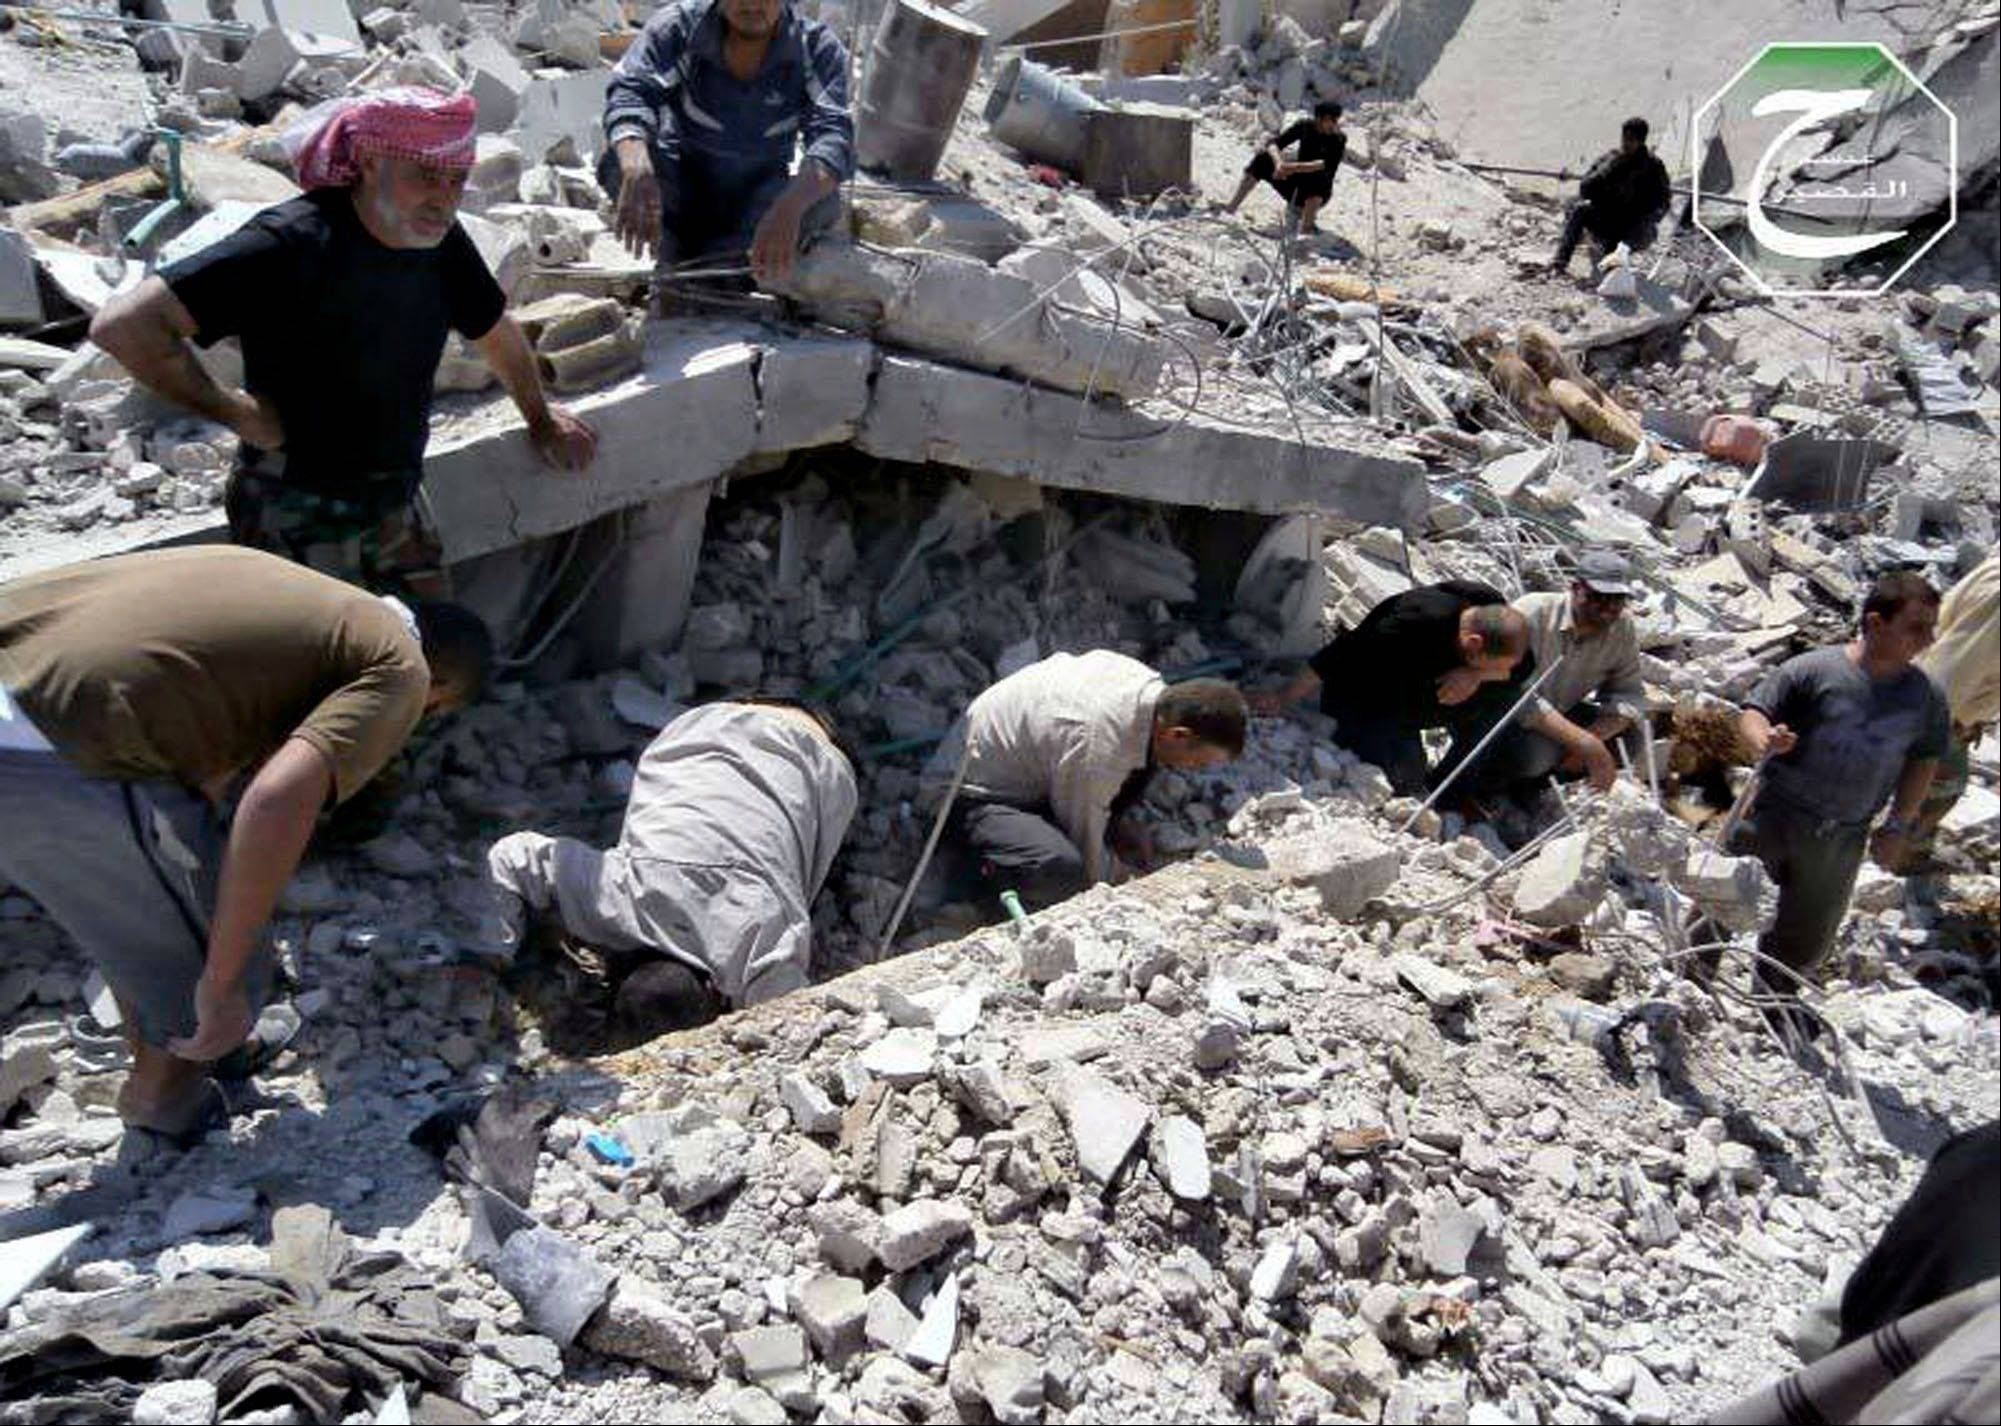 Syrian citizens inspect the rubble of buildings that were damaged from a Syrian forces airstrike in the town of Qusair, near the Lebanon border, Homs province, Syria. Cut off for three weeks by a regime siege, doctors in the Syrian town of Qusair keep hundreds of wounded in storerooms and underground shop cellars, short on antibiotics and anesthesia, using unsterilized cloth for bandages and blowing air with pumps because there's no oxygen canisters, amid relentless shelling and sniper fire. More than a dozen have died from untreated wounds and at least 300 others need immediate evacuation, one doctor says.